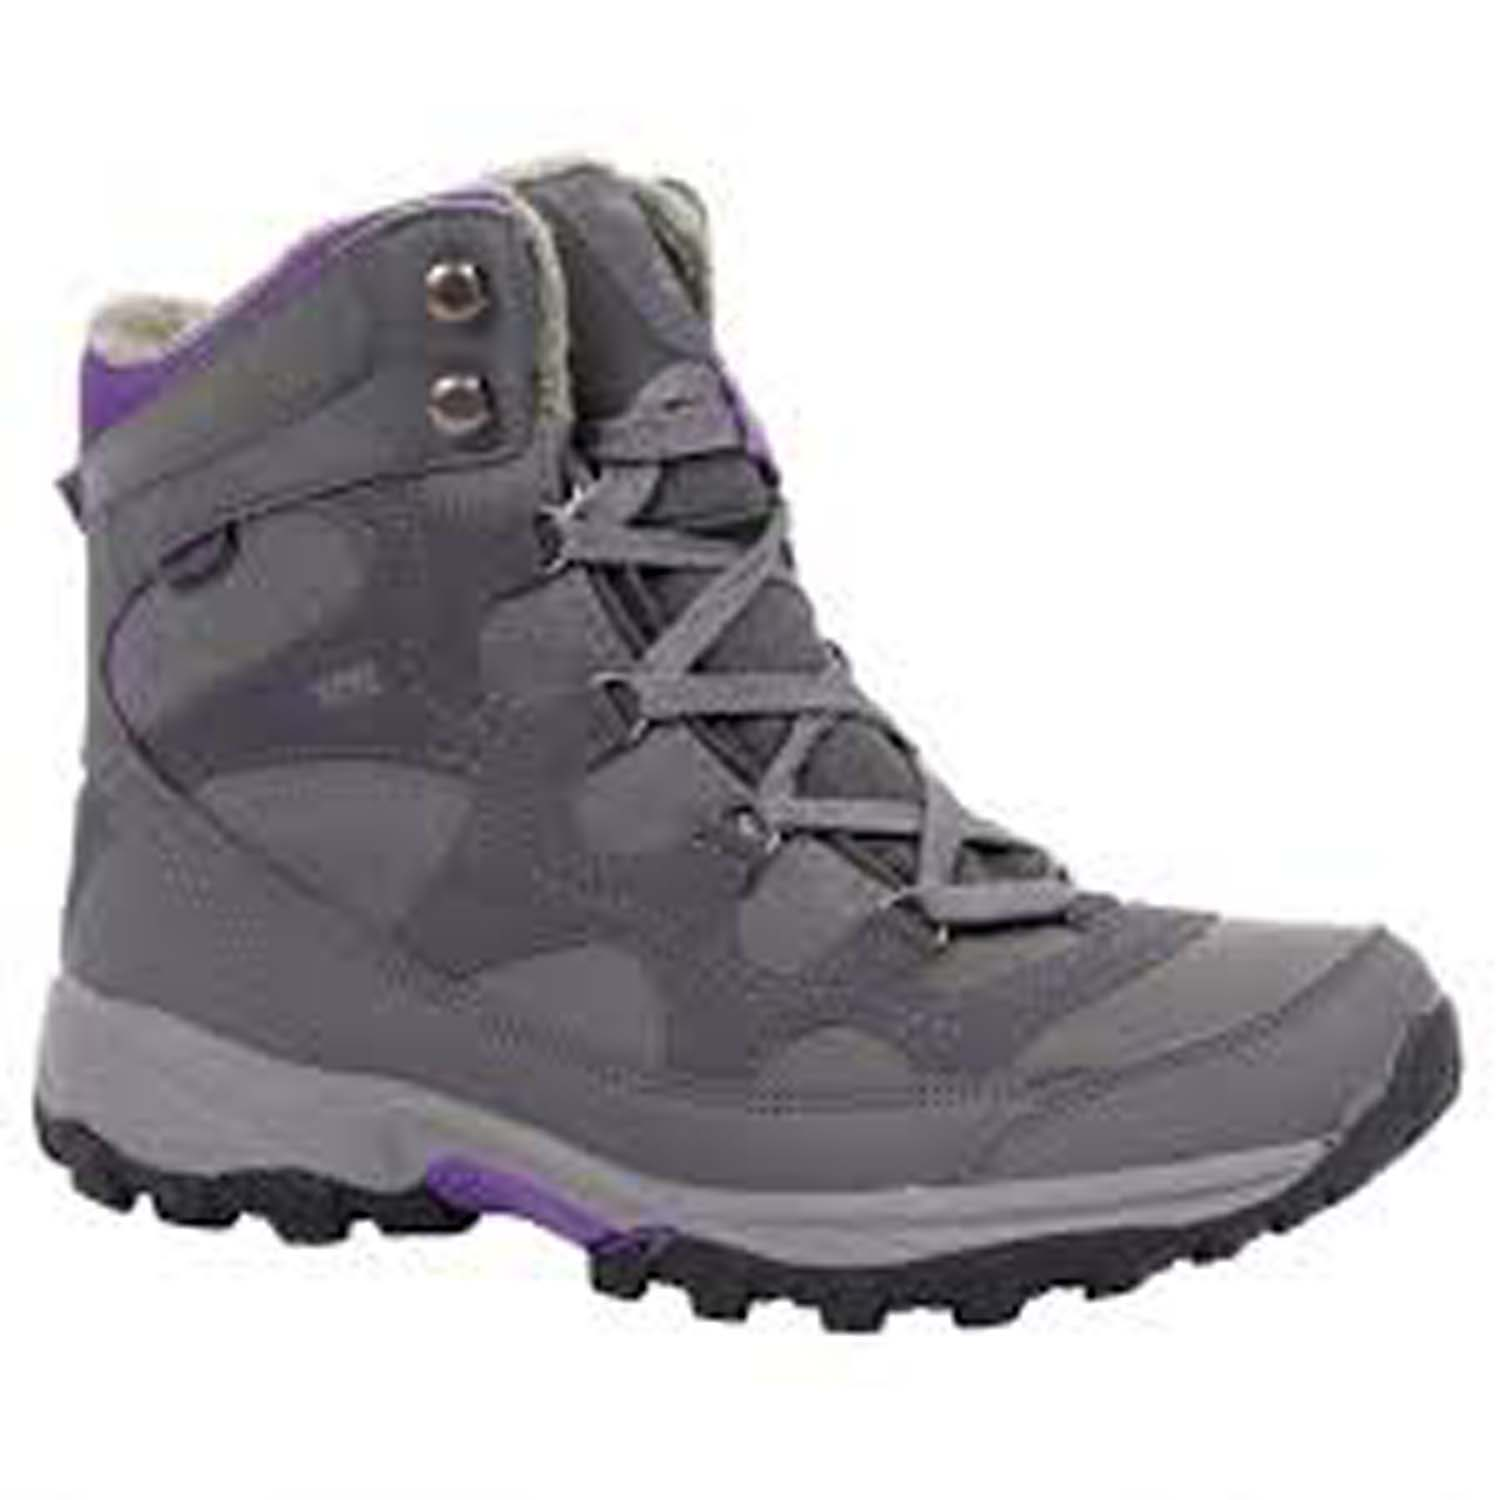 Insulated Walking Shoes Womens